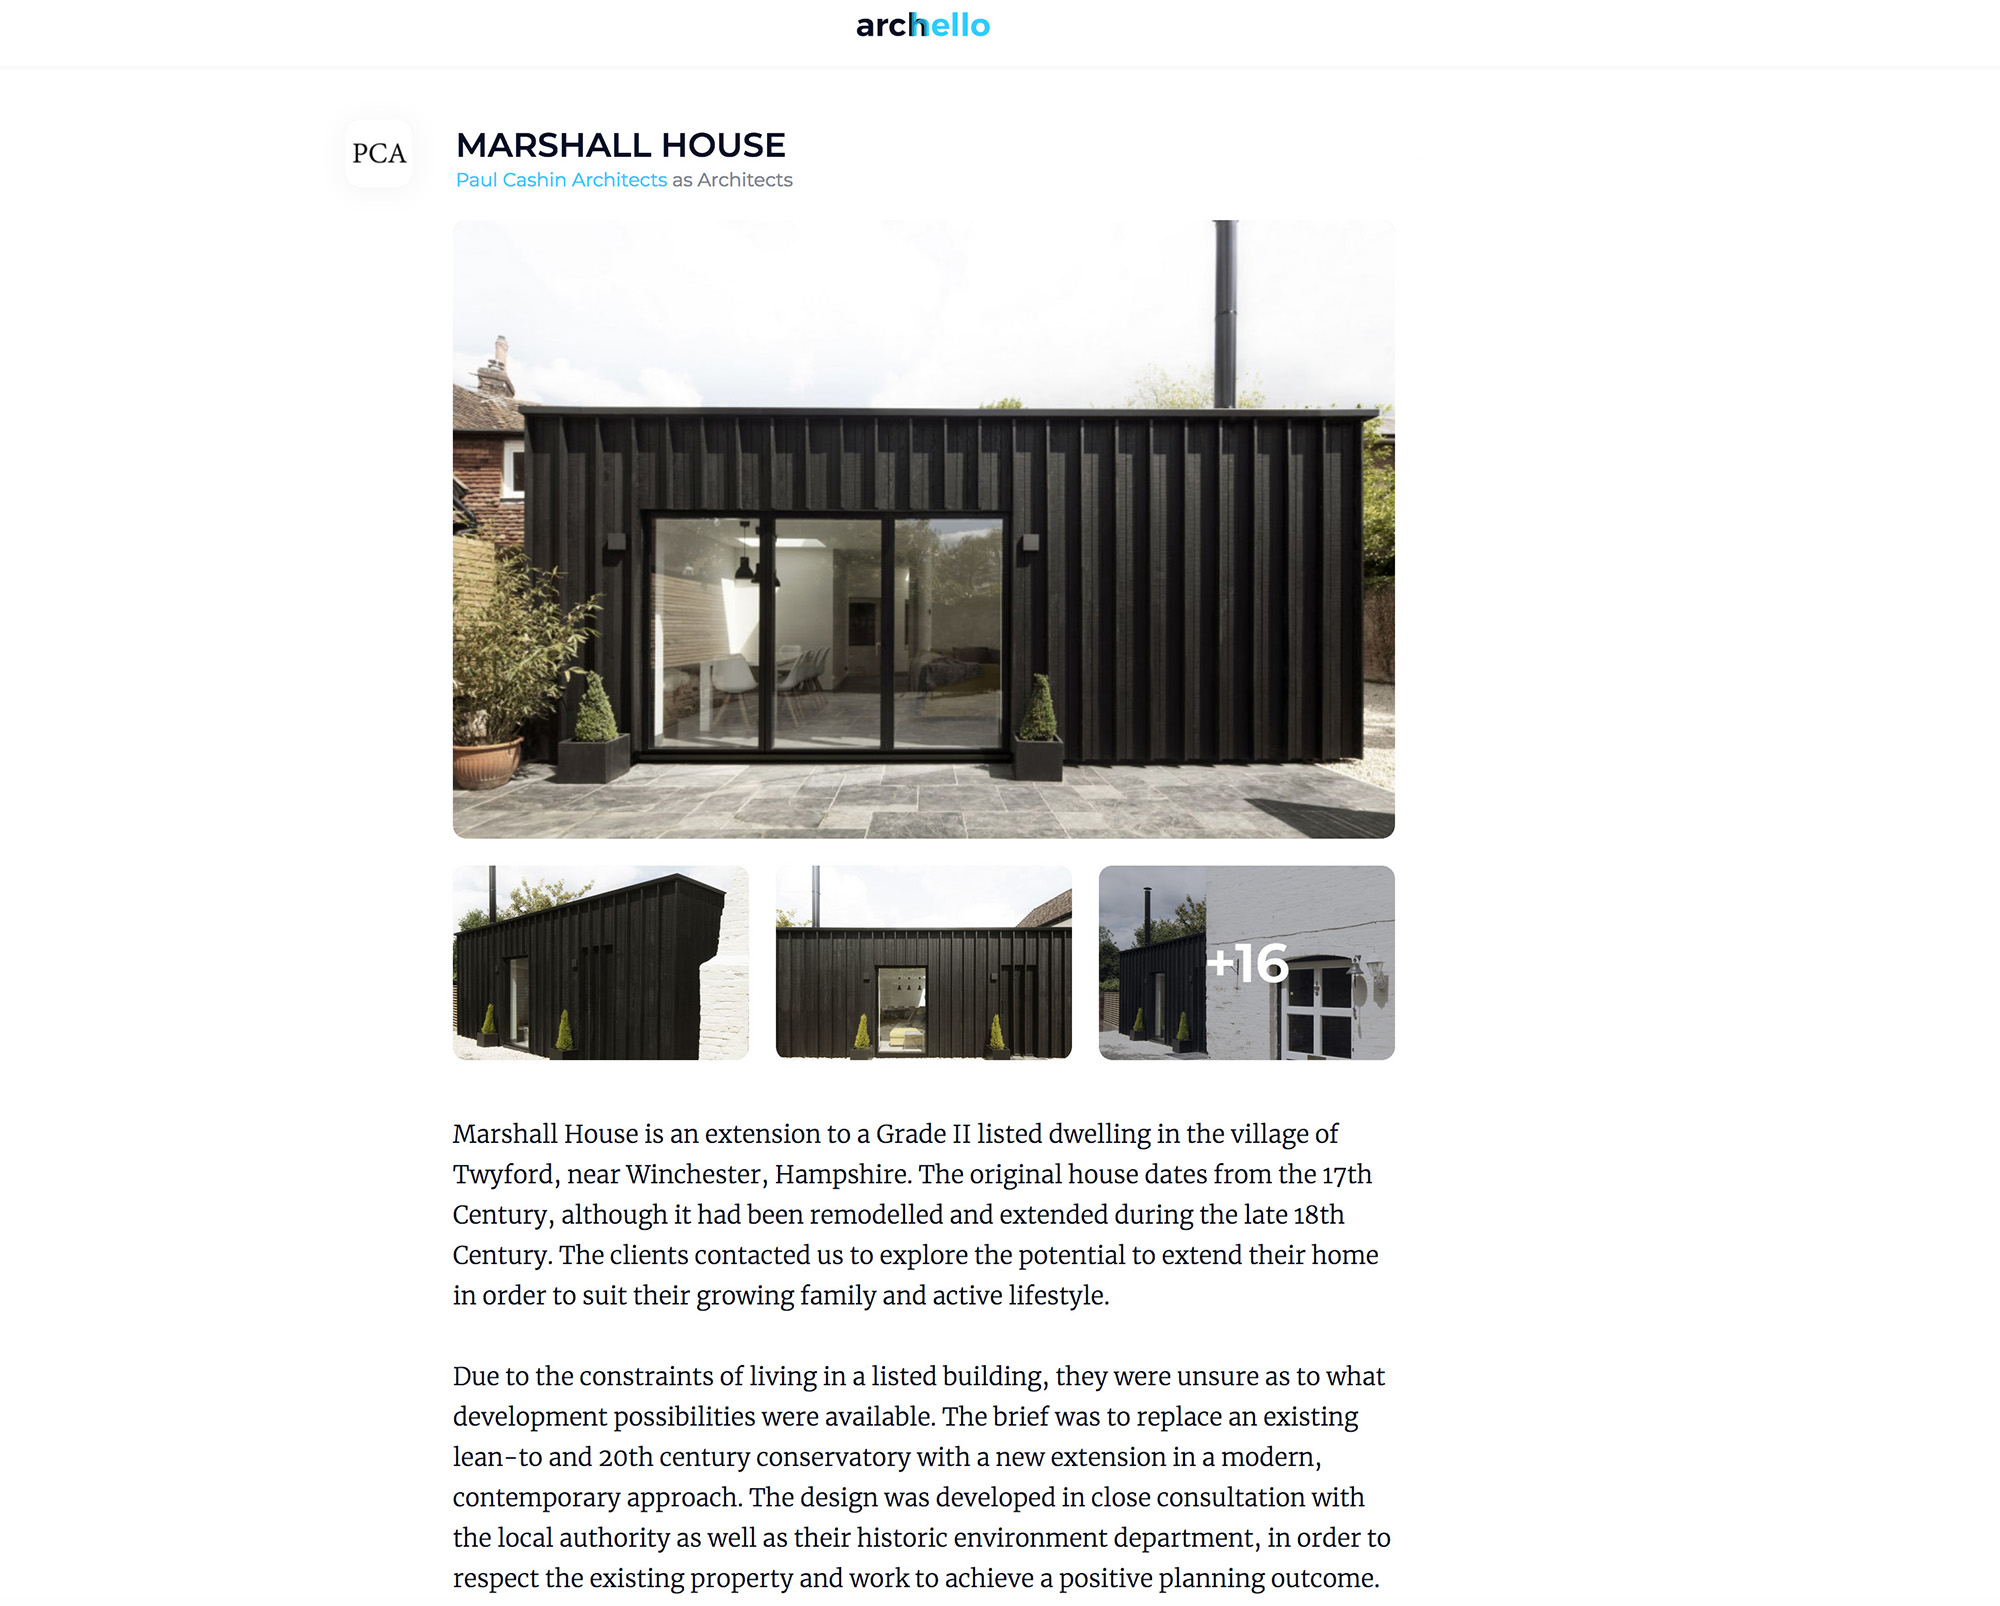 06.19 Marshall House featured on Archello